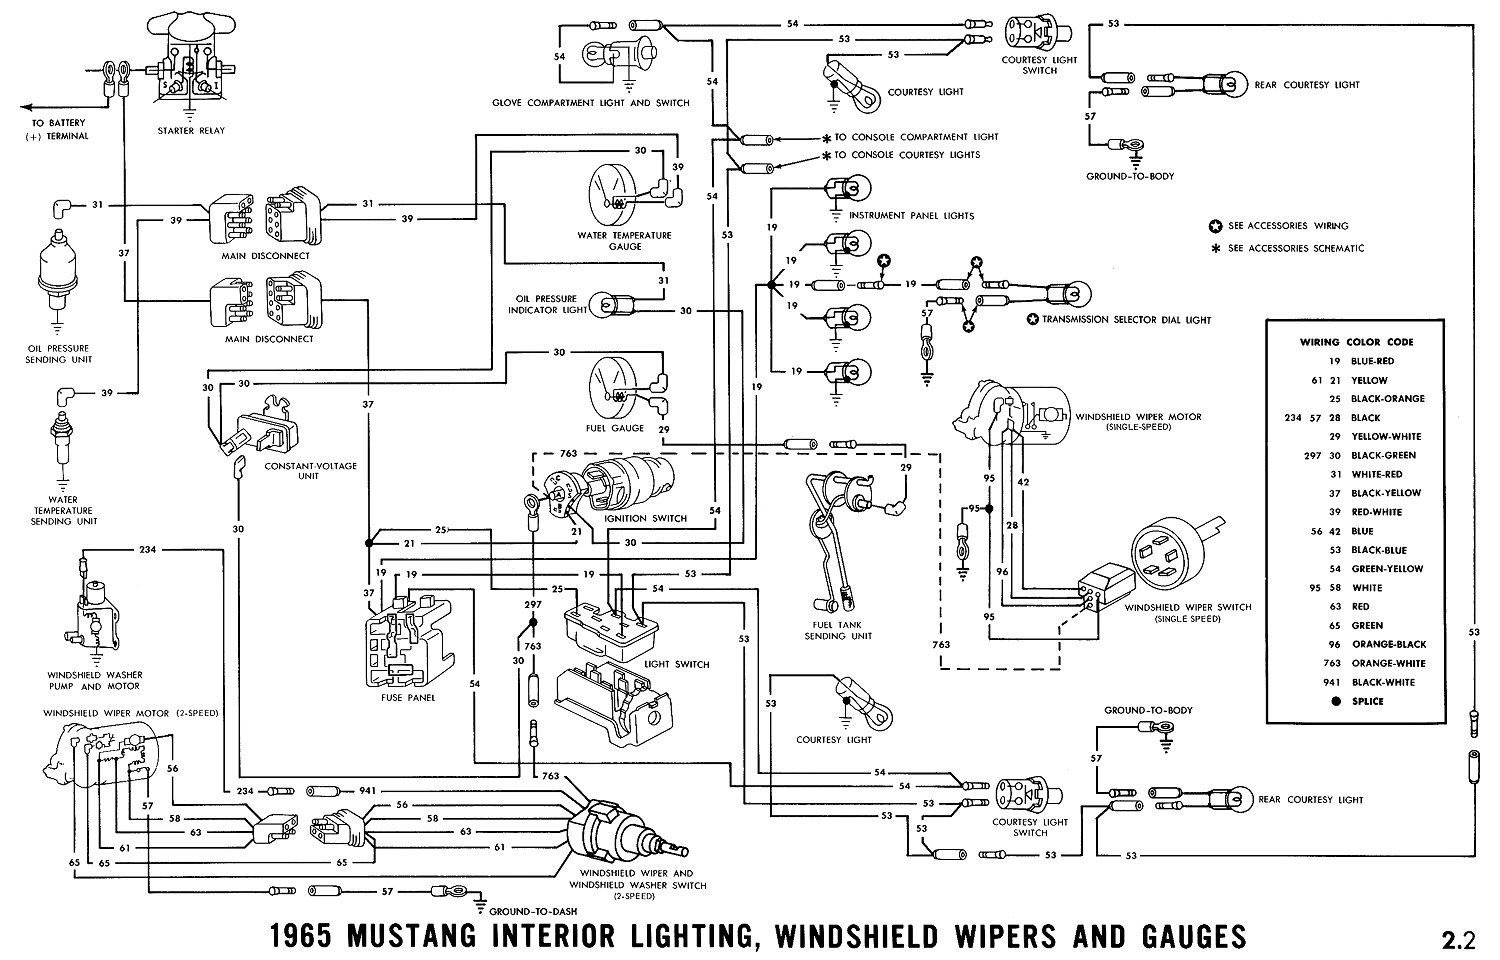 65 mustang heater wiring diagram wiring diagram schematics 1966 mustang wiring diagram 1965 mustang wiring diagrams average joe restoration 65 ford mustang wiring diagram 65 mustang heater wiring diagram